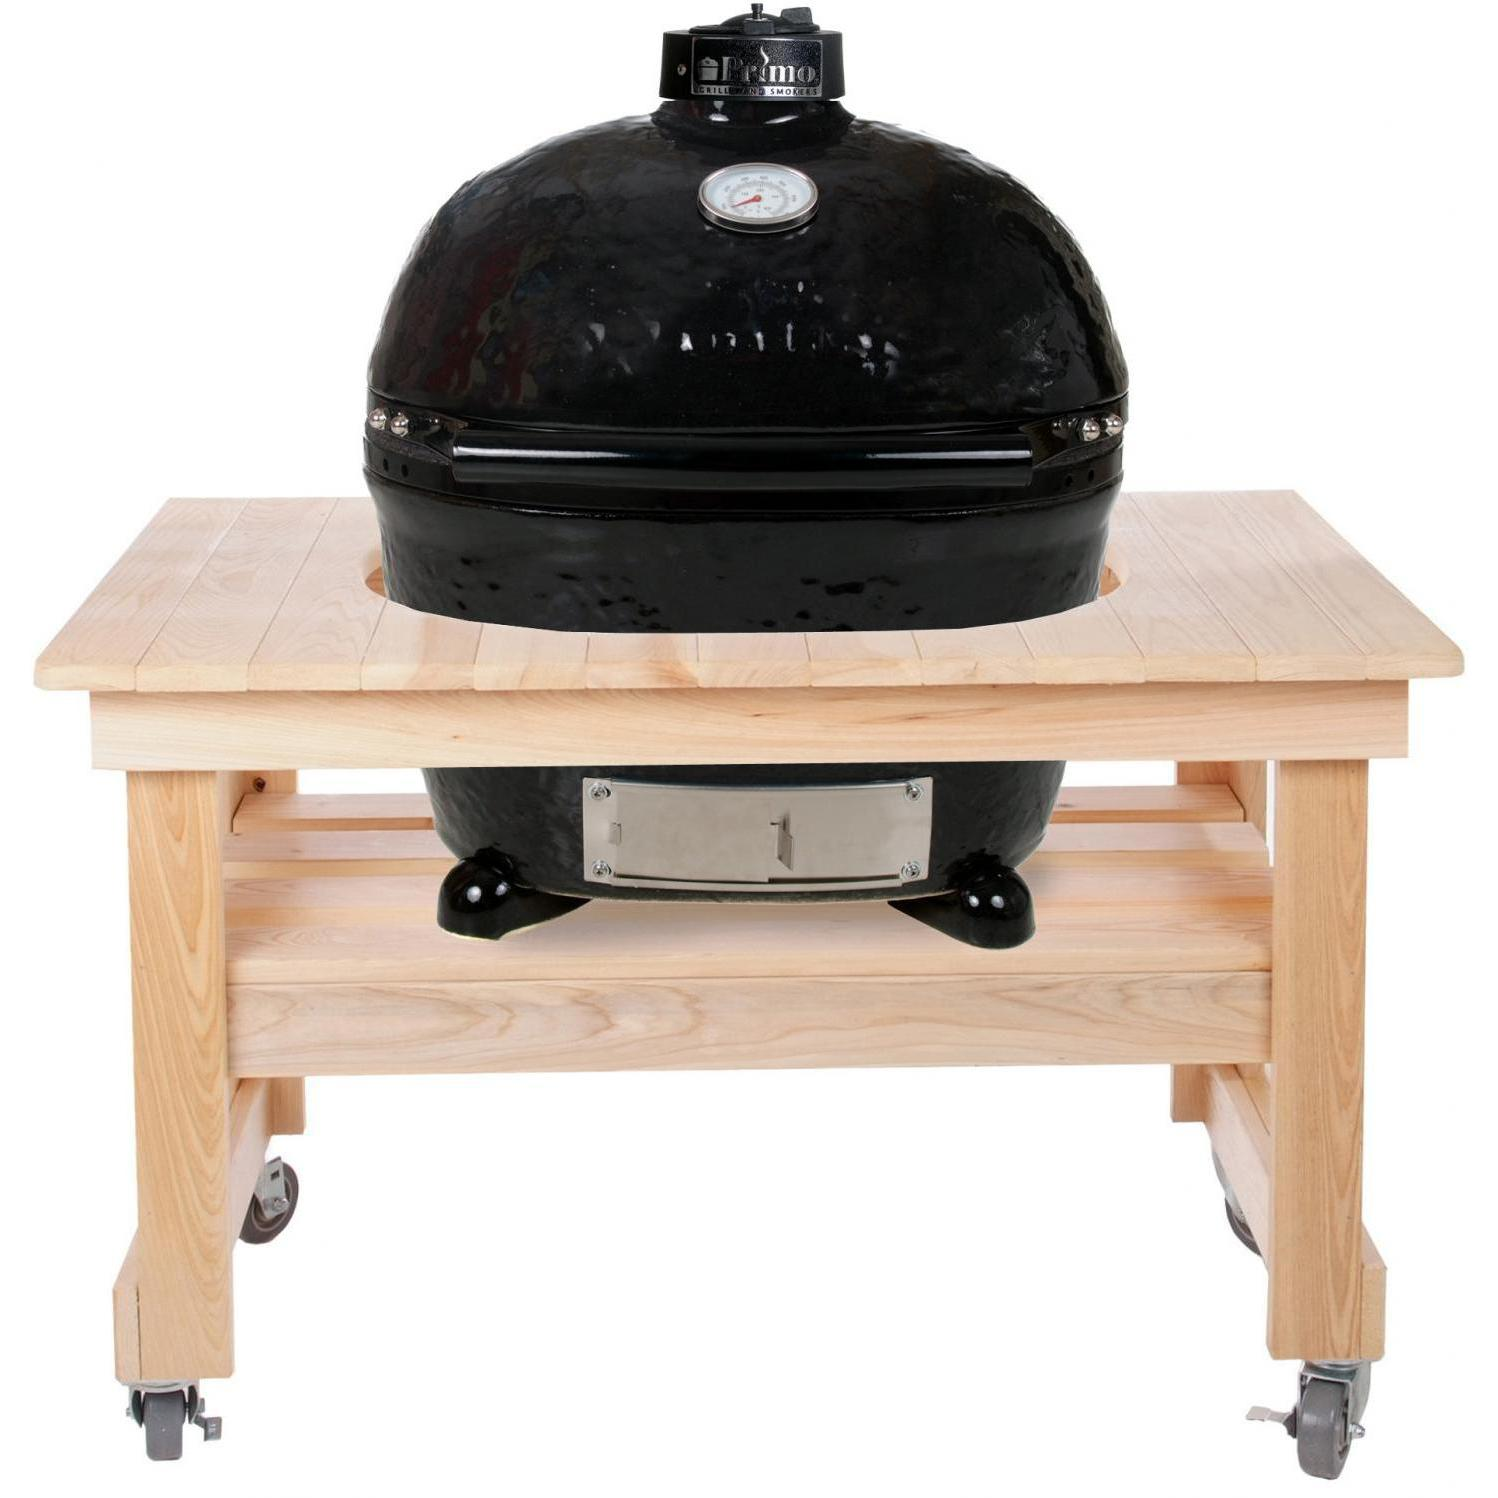 Primo Oval XL Ceramic Kamado Grill On Compact Cypress Table - 778 + 602